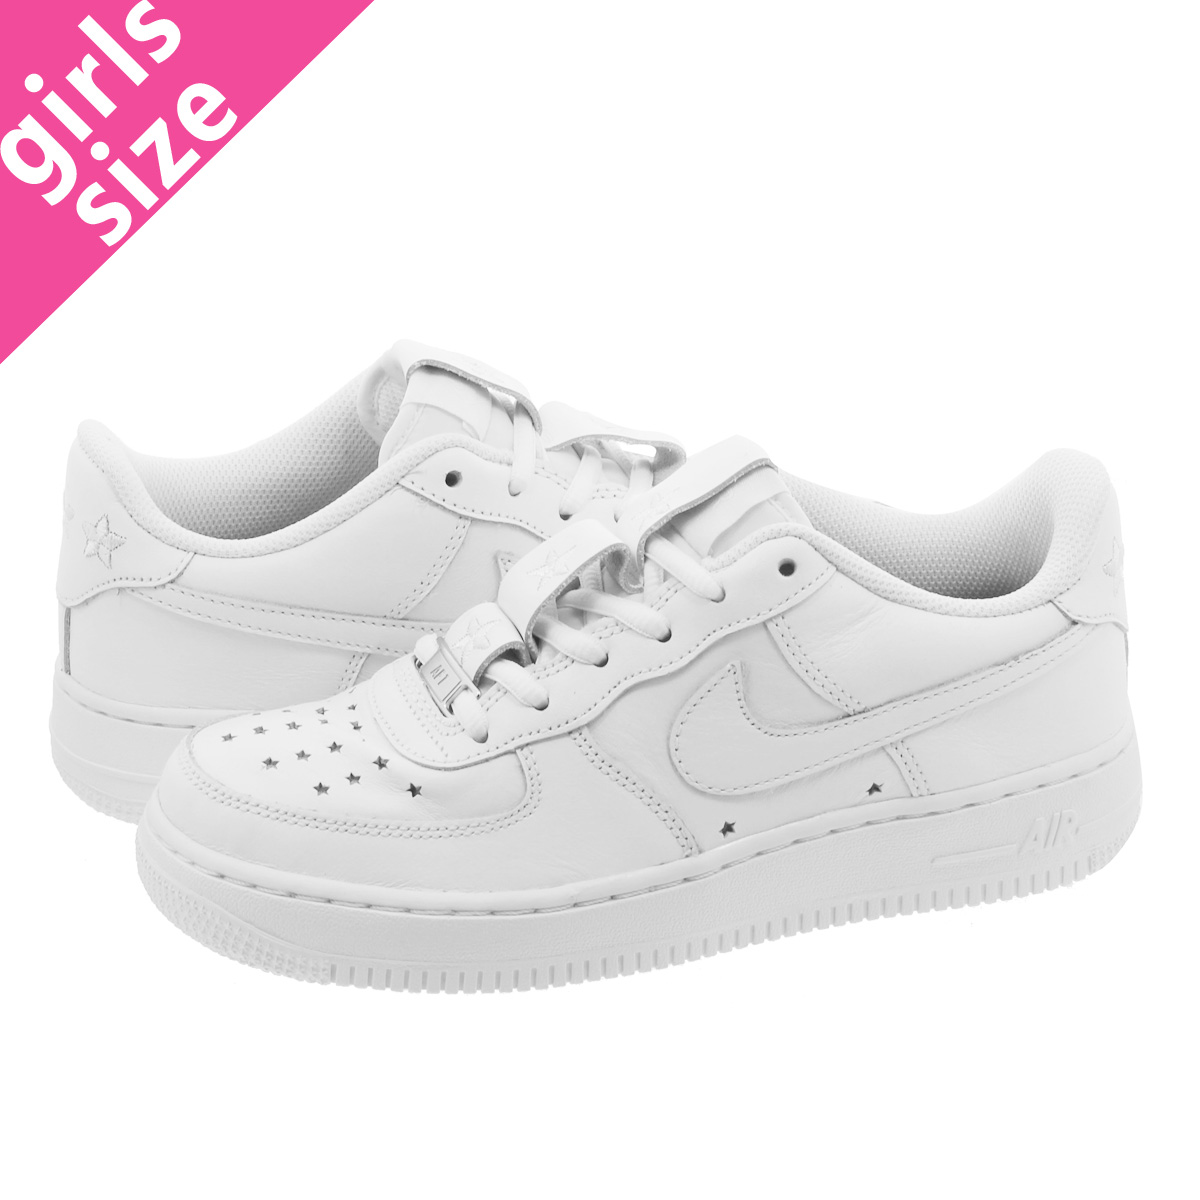 【大人気の女の子サイズ♪】 NIKE AIR FORCE 1 LOW 【INDEPENDENCE DAY PACK】 ナイキ エア フォース 1 ロー WHITE/MIDNIGHT NAVY ar0688-100